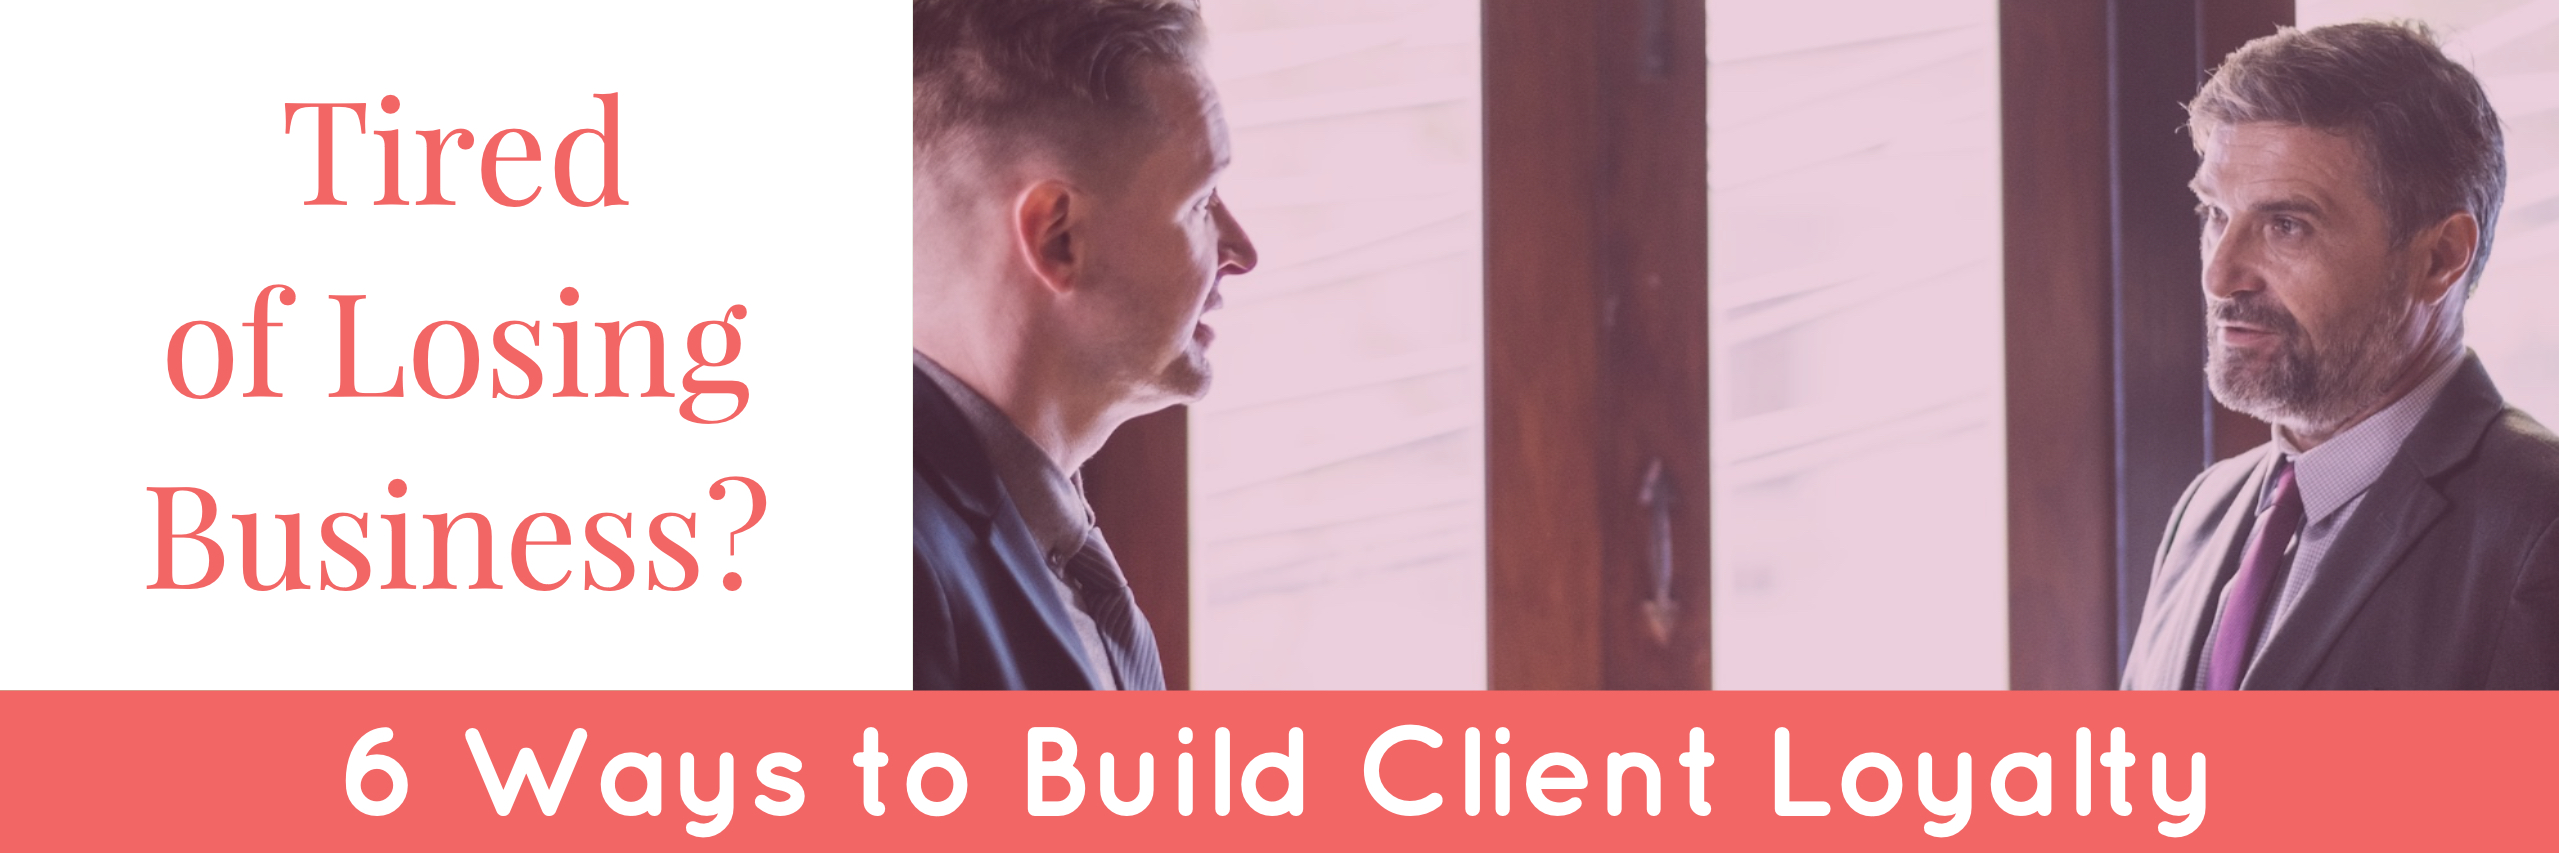 Tired of Losing Business? 6 Ways to Build Client Loyalty